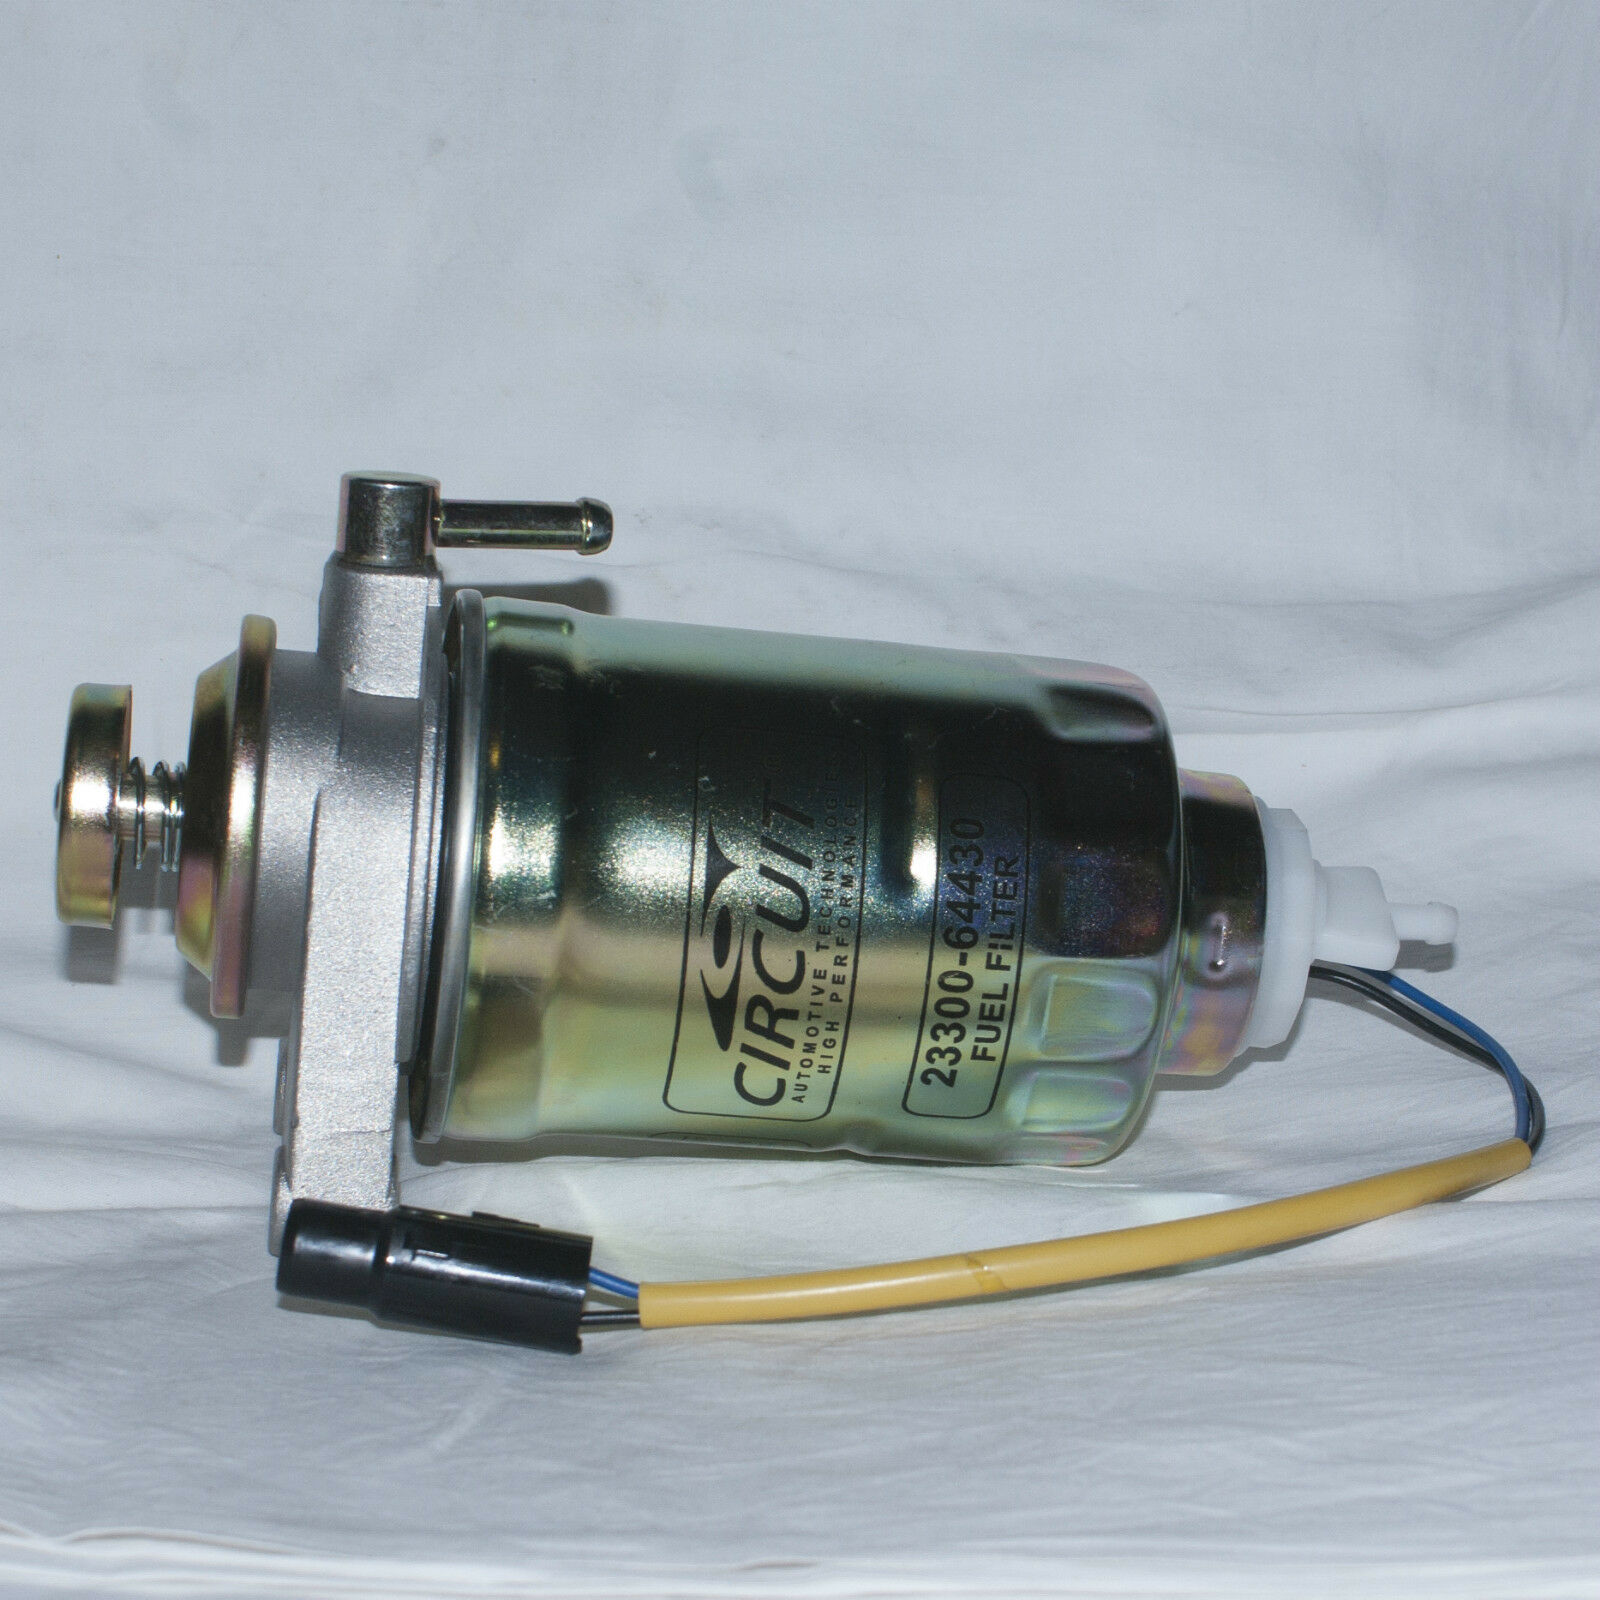 Fuel Lift Pump Primer With Filter Fits Toyota 2c Ebay 1973 Mustang Norton Secured Powered By Verisign